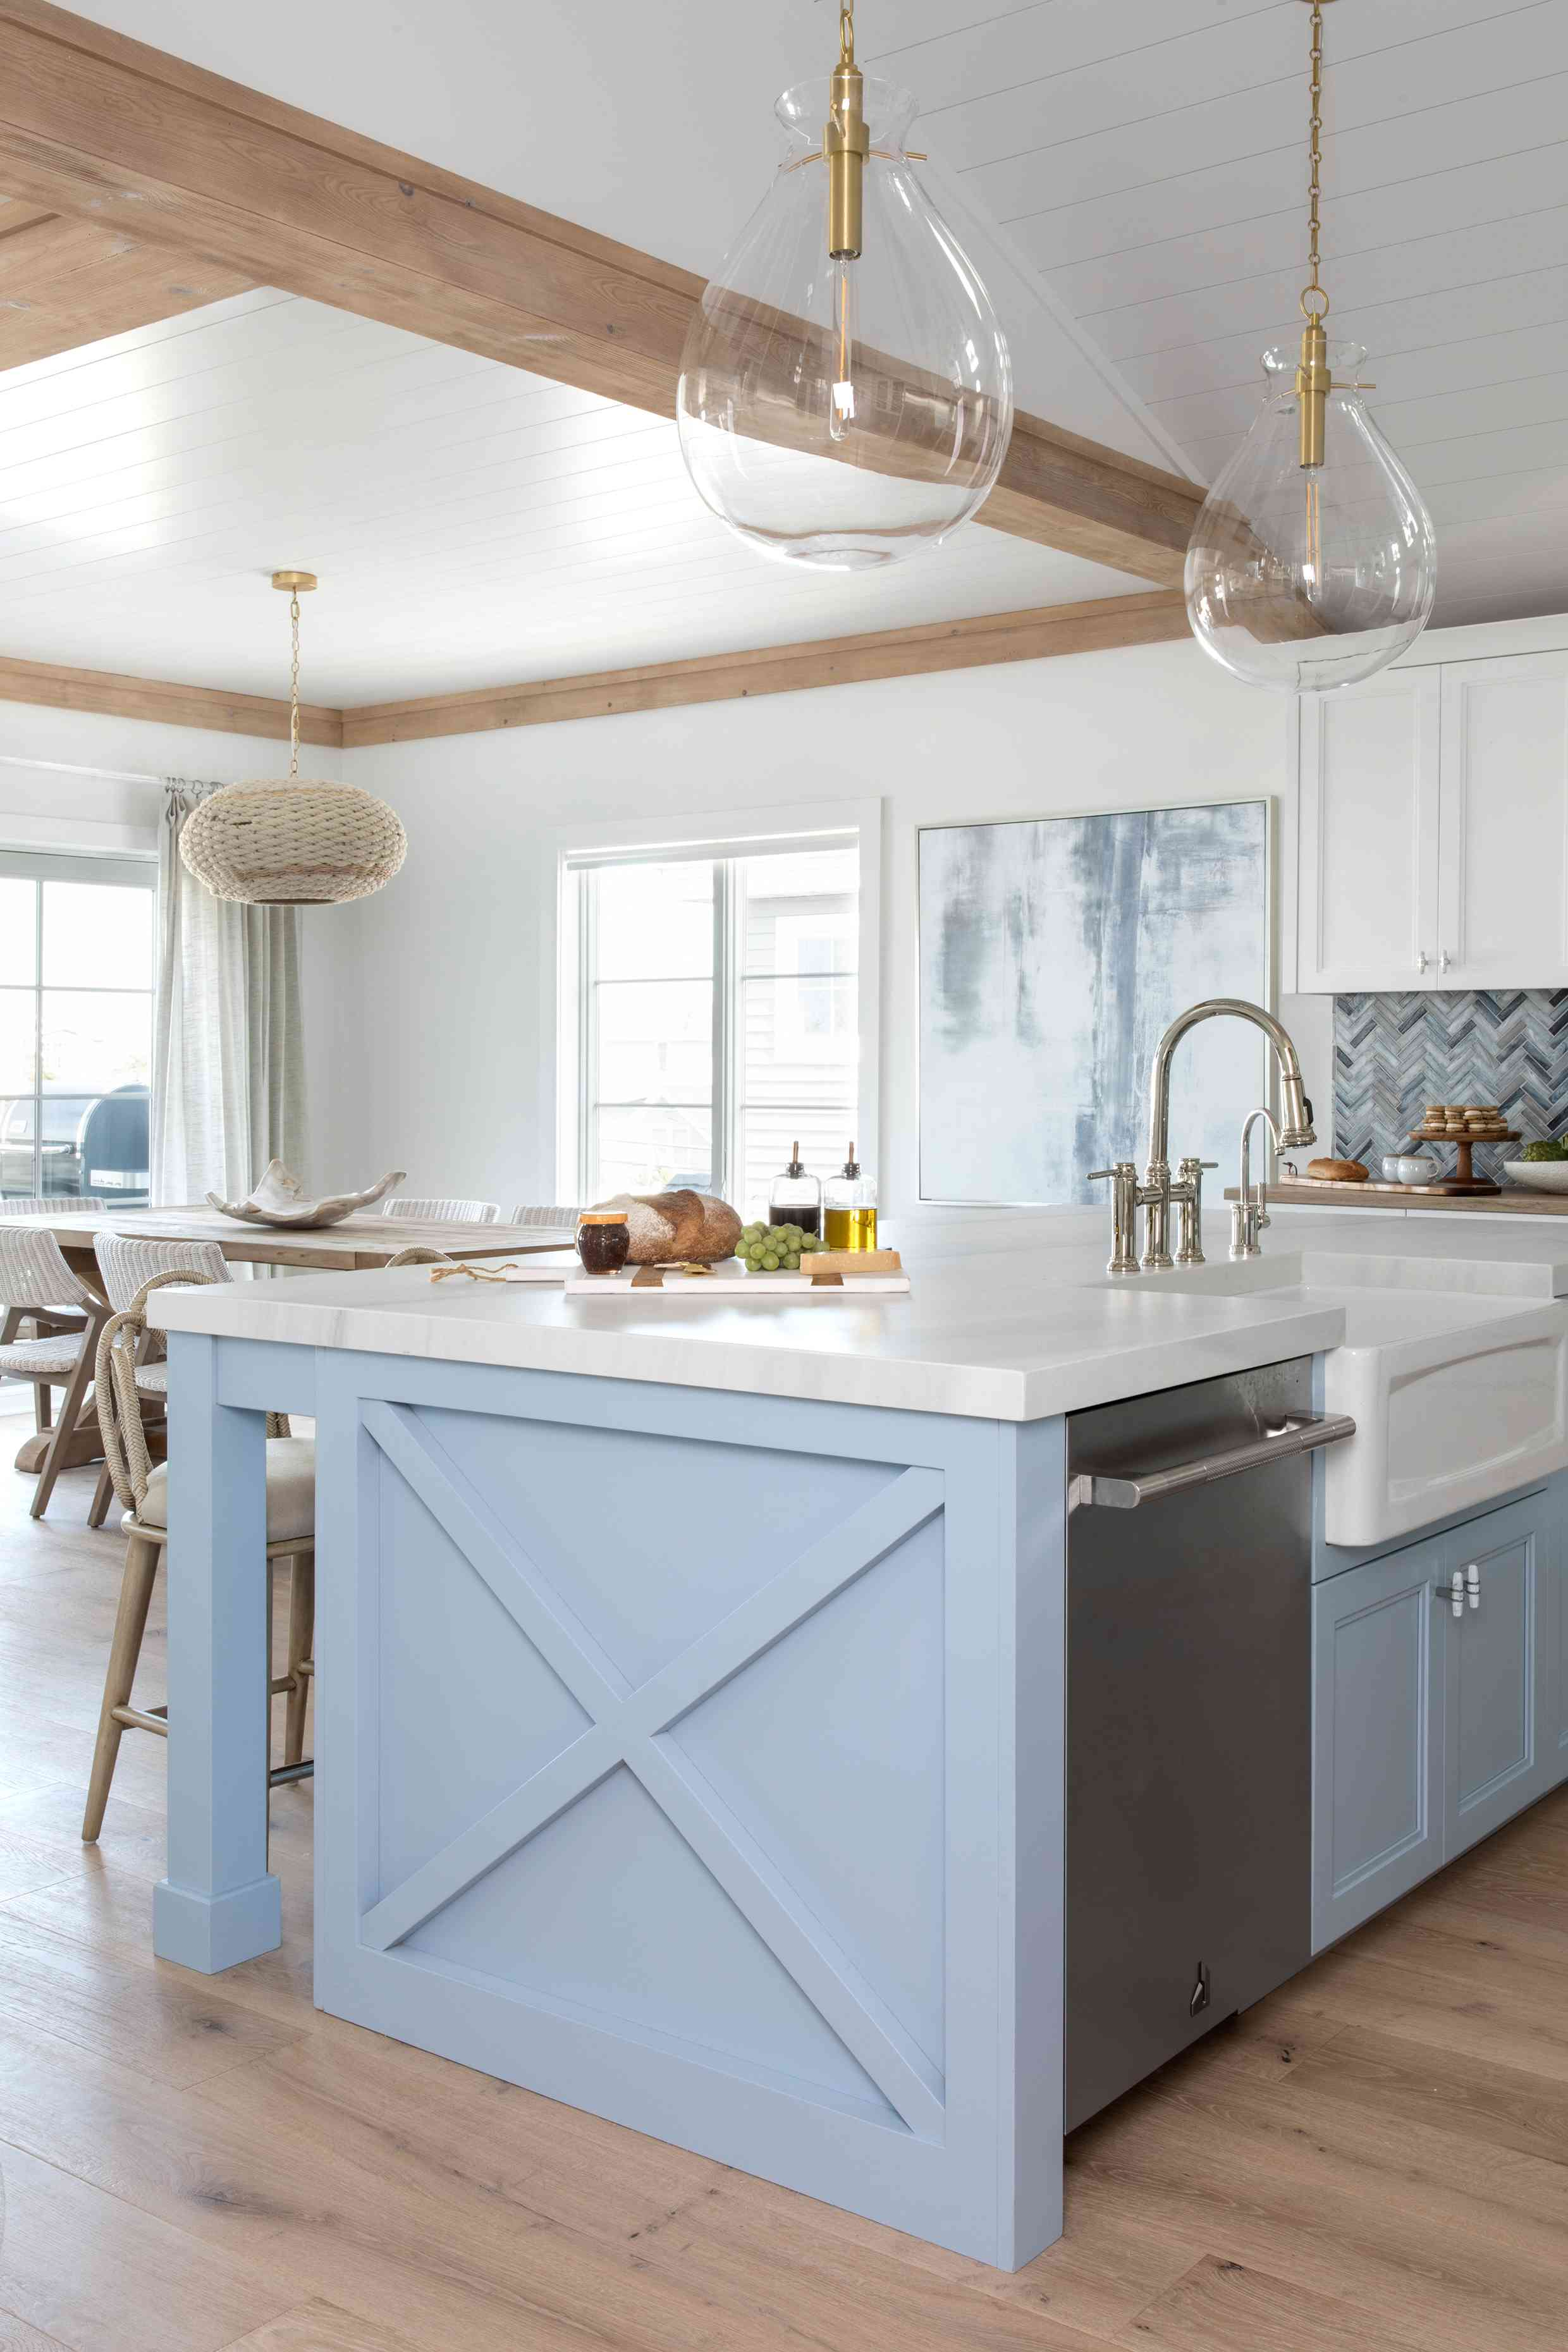 The kitchen in Karen B. Wolfe's Long Beach Island home features a farmhouse sink and sky blue lower cabinets